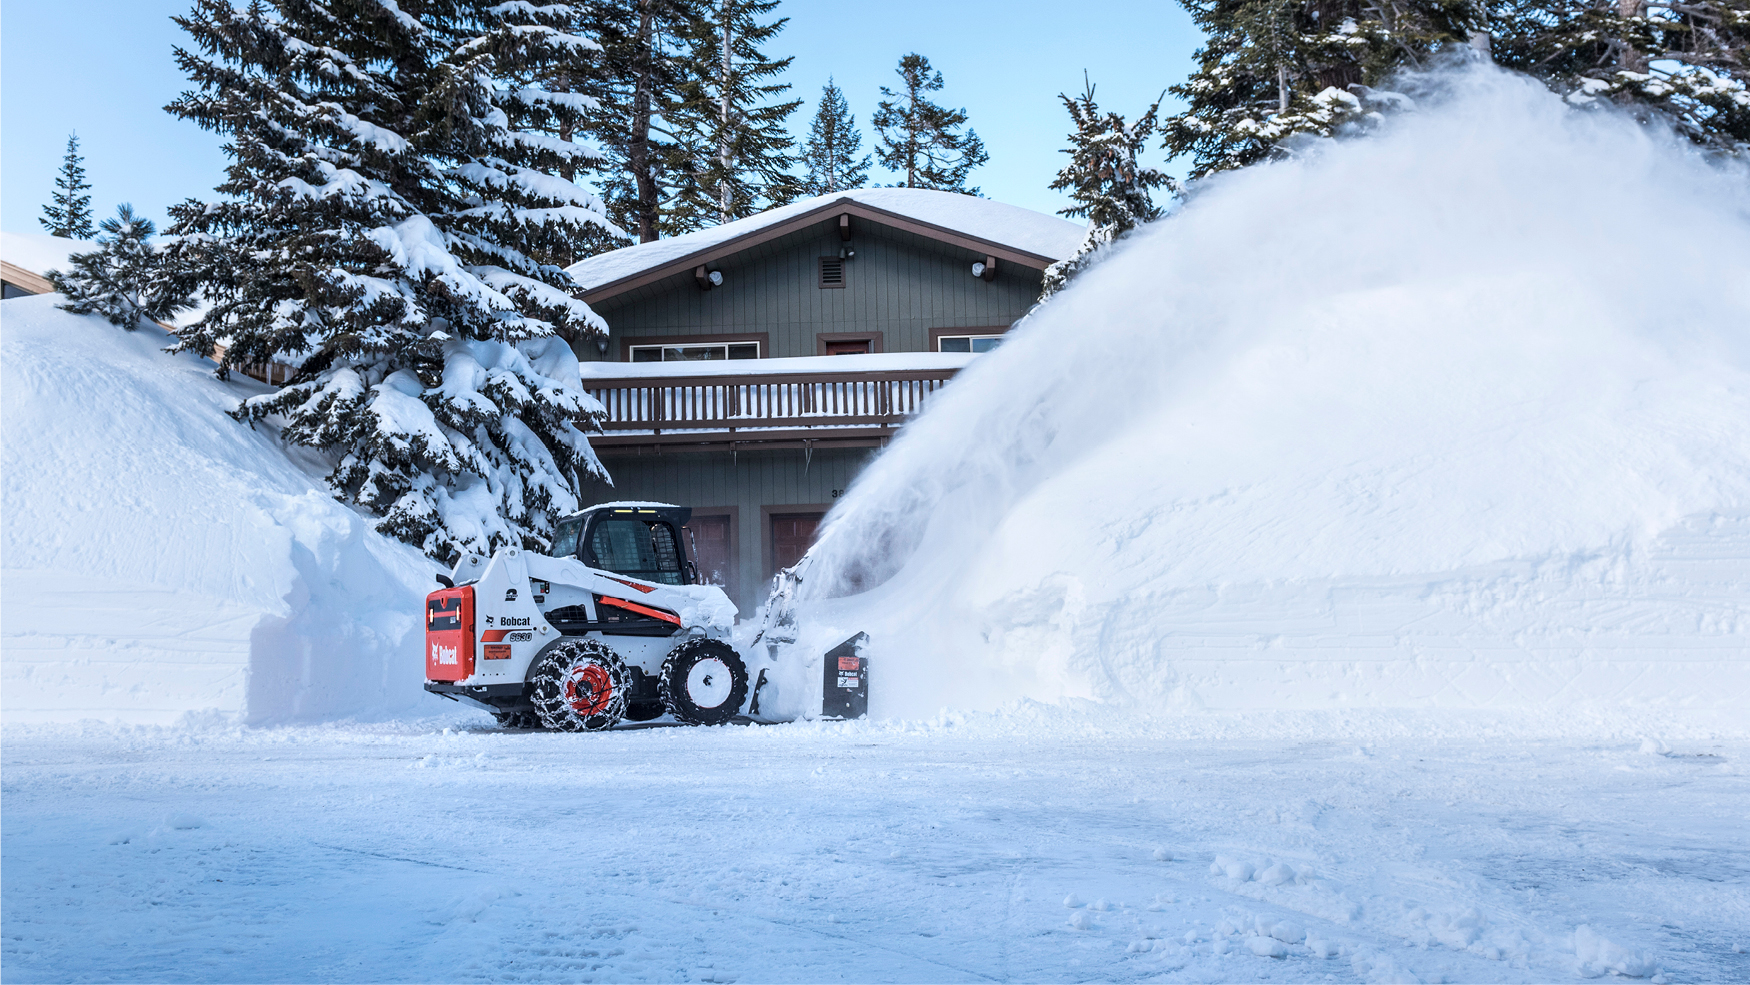 S630 clearing snow from a residence using a snowblower